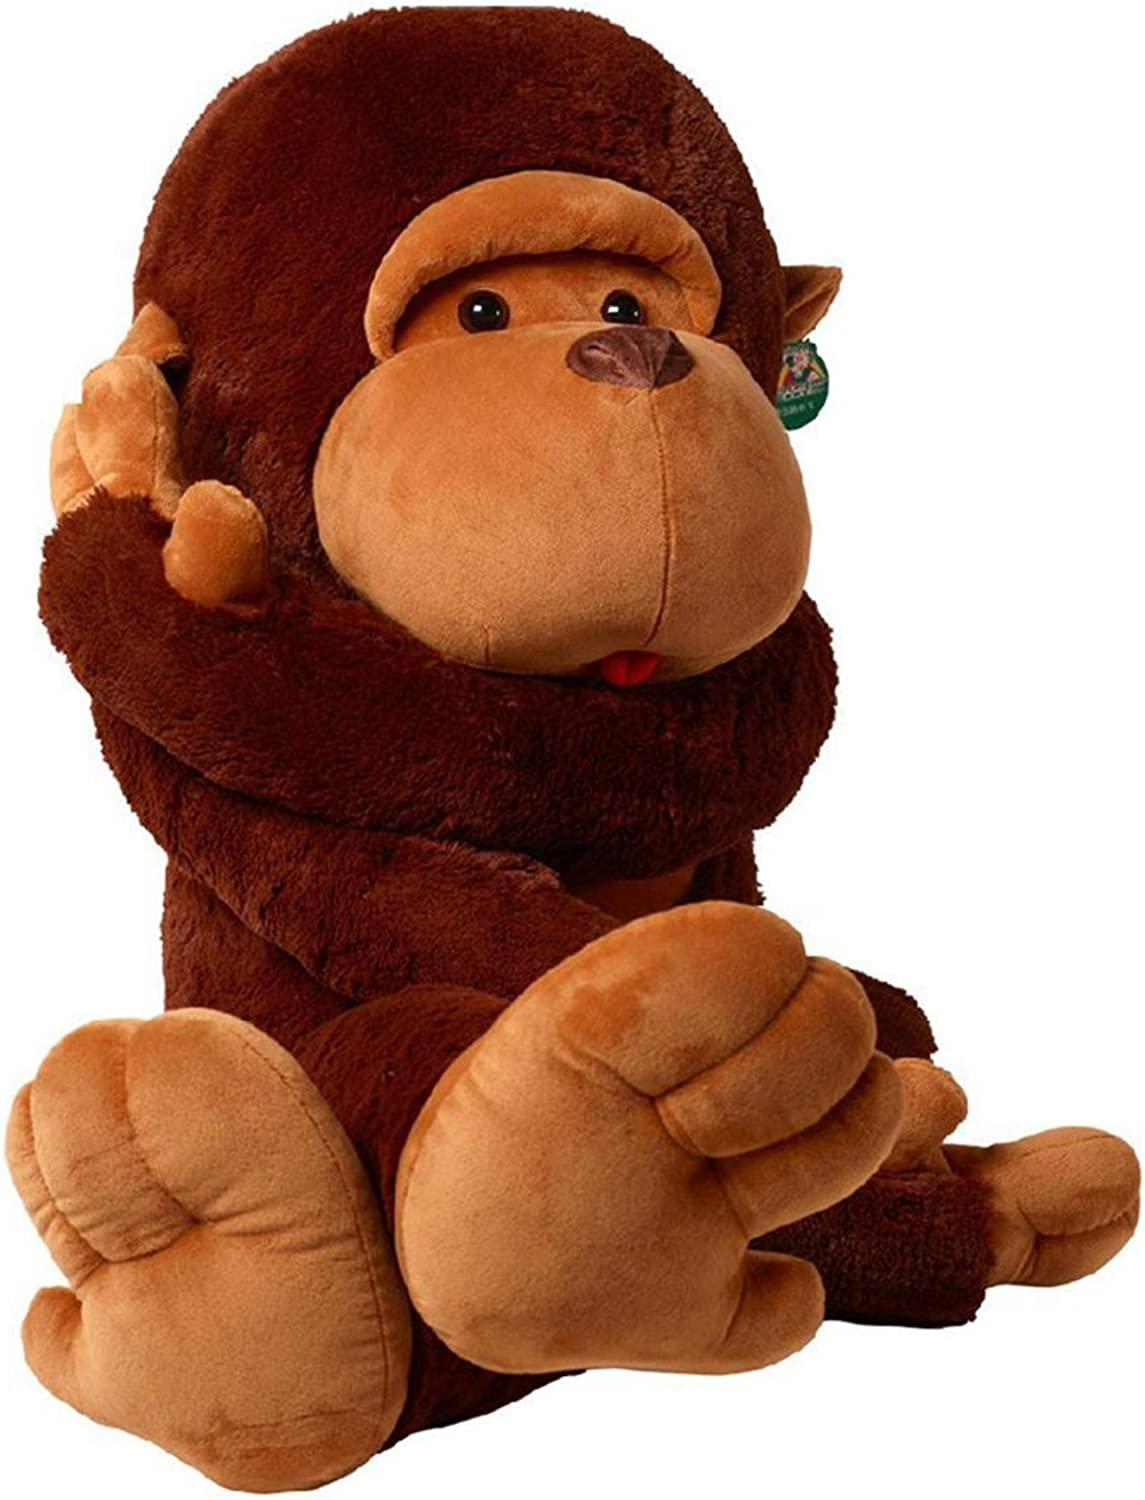 110Cm Adorable The Giant Monkey Plush Toy Soft Stuffed Animal Doll Birthday And Christmas Gifts (Coffee)